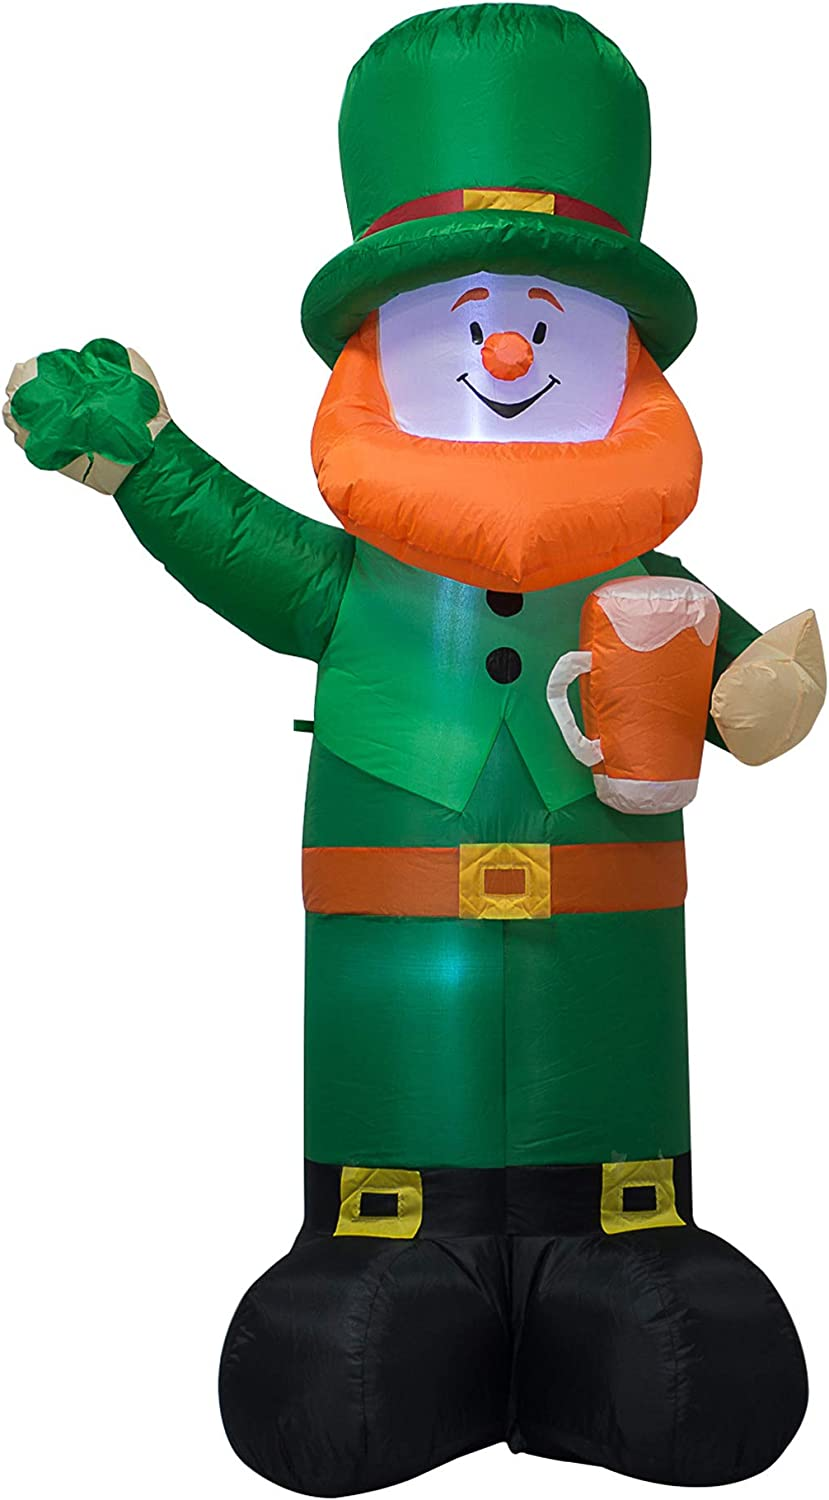 AJY 6 Feet St Patricks Day Inflatable Leprechaun Holding Shamrock and Beer Blow Up Indoor Outdoor Yard Lawn Decoration